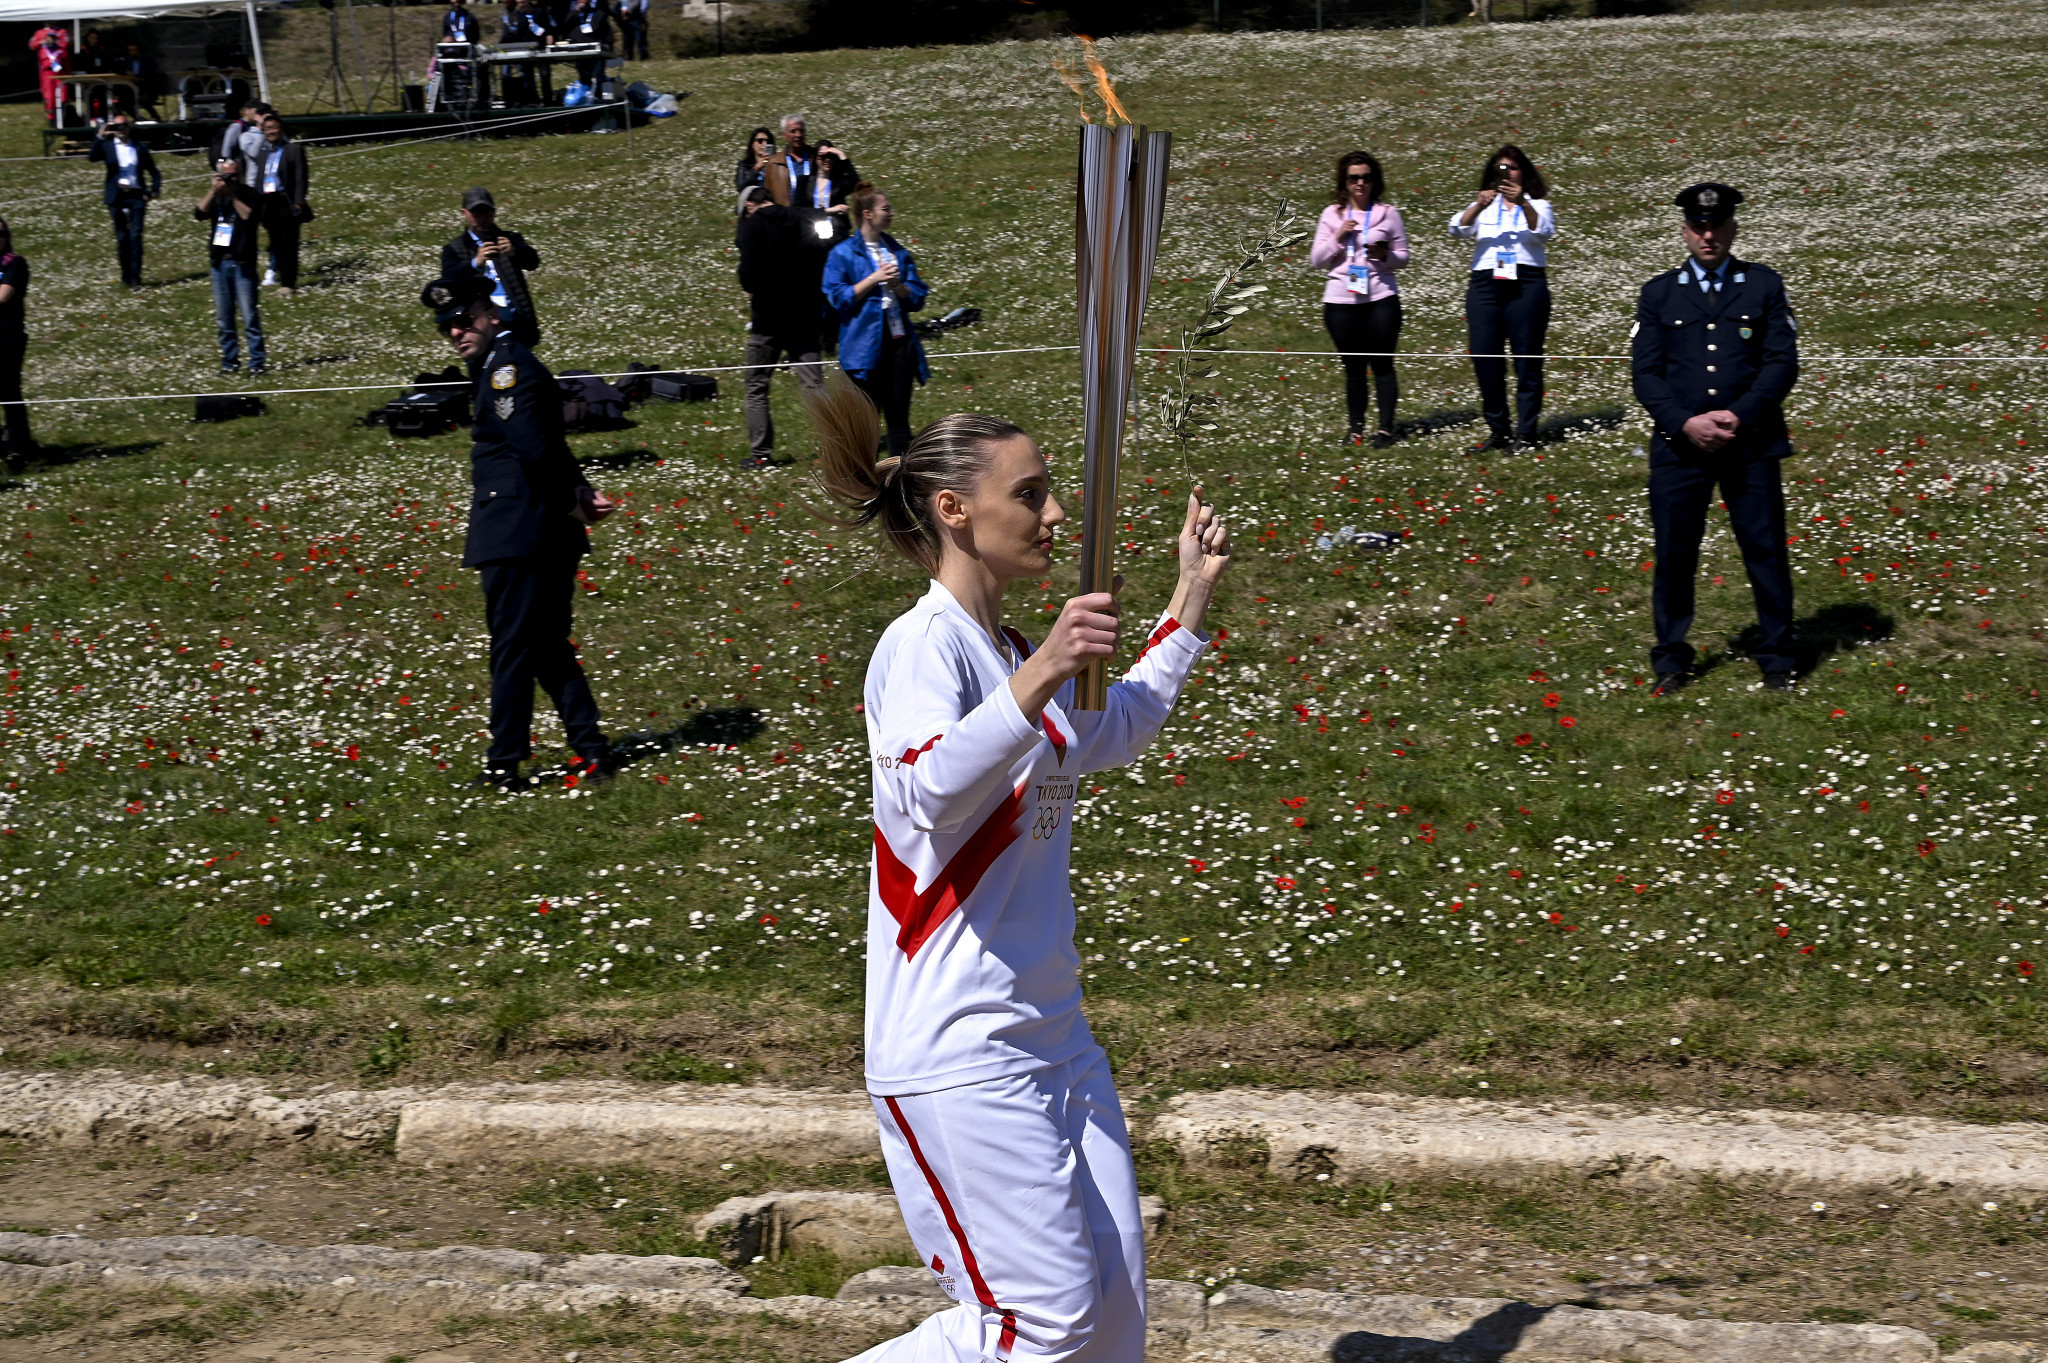 Anna Korakaki became the first woman to carry the Olympic Torch inside the Olympic Stadium earlier this year ©Getty Images